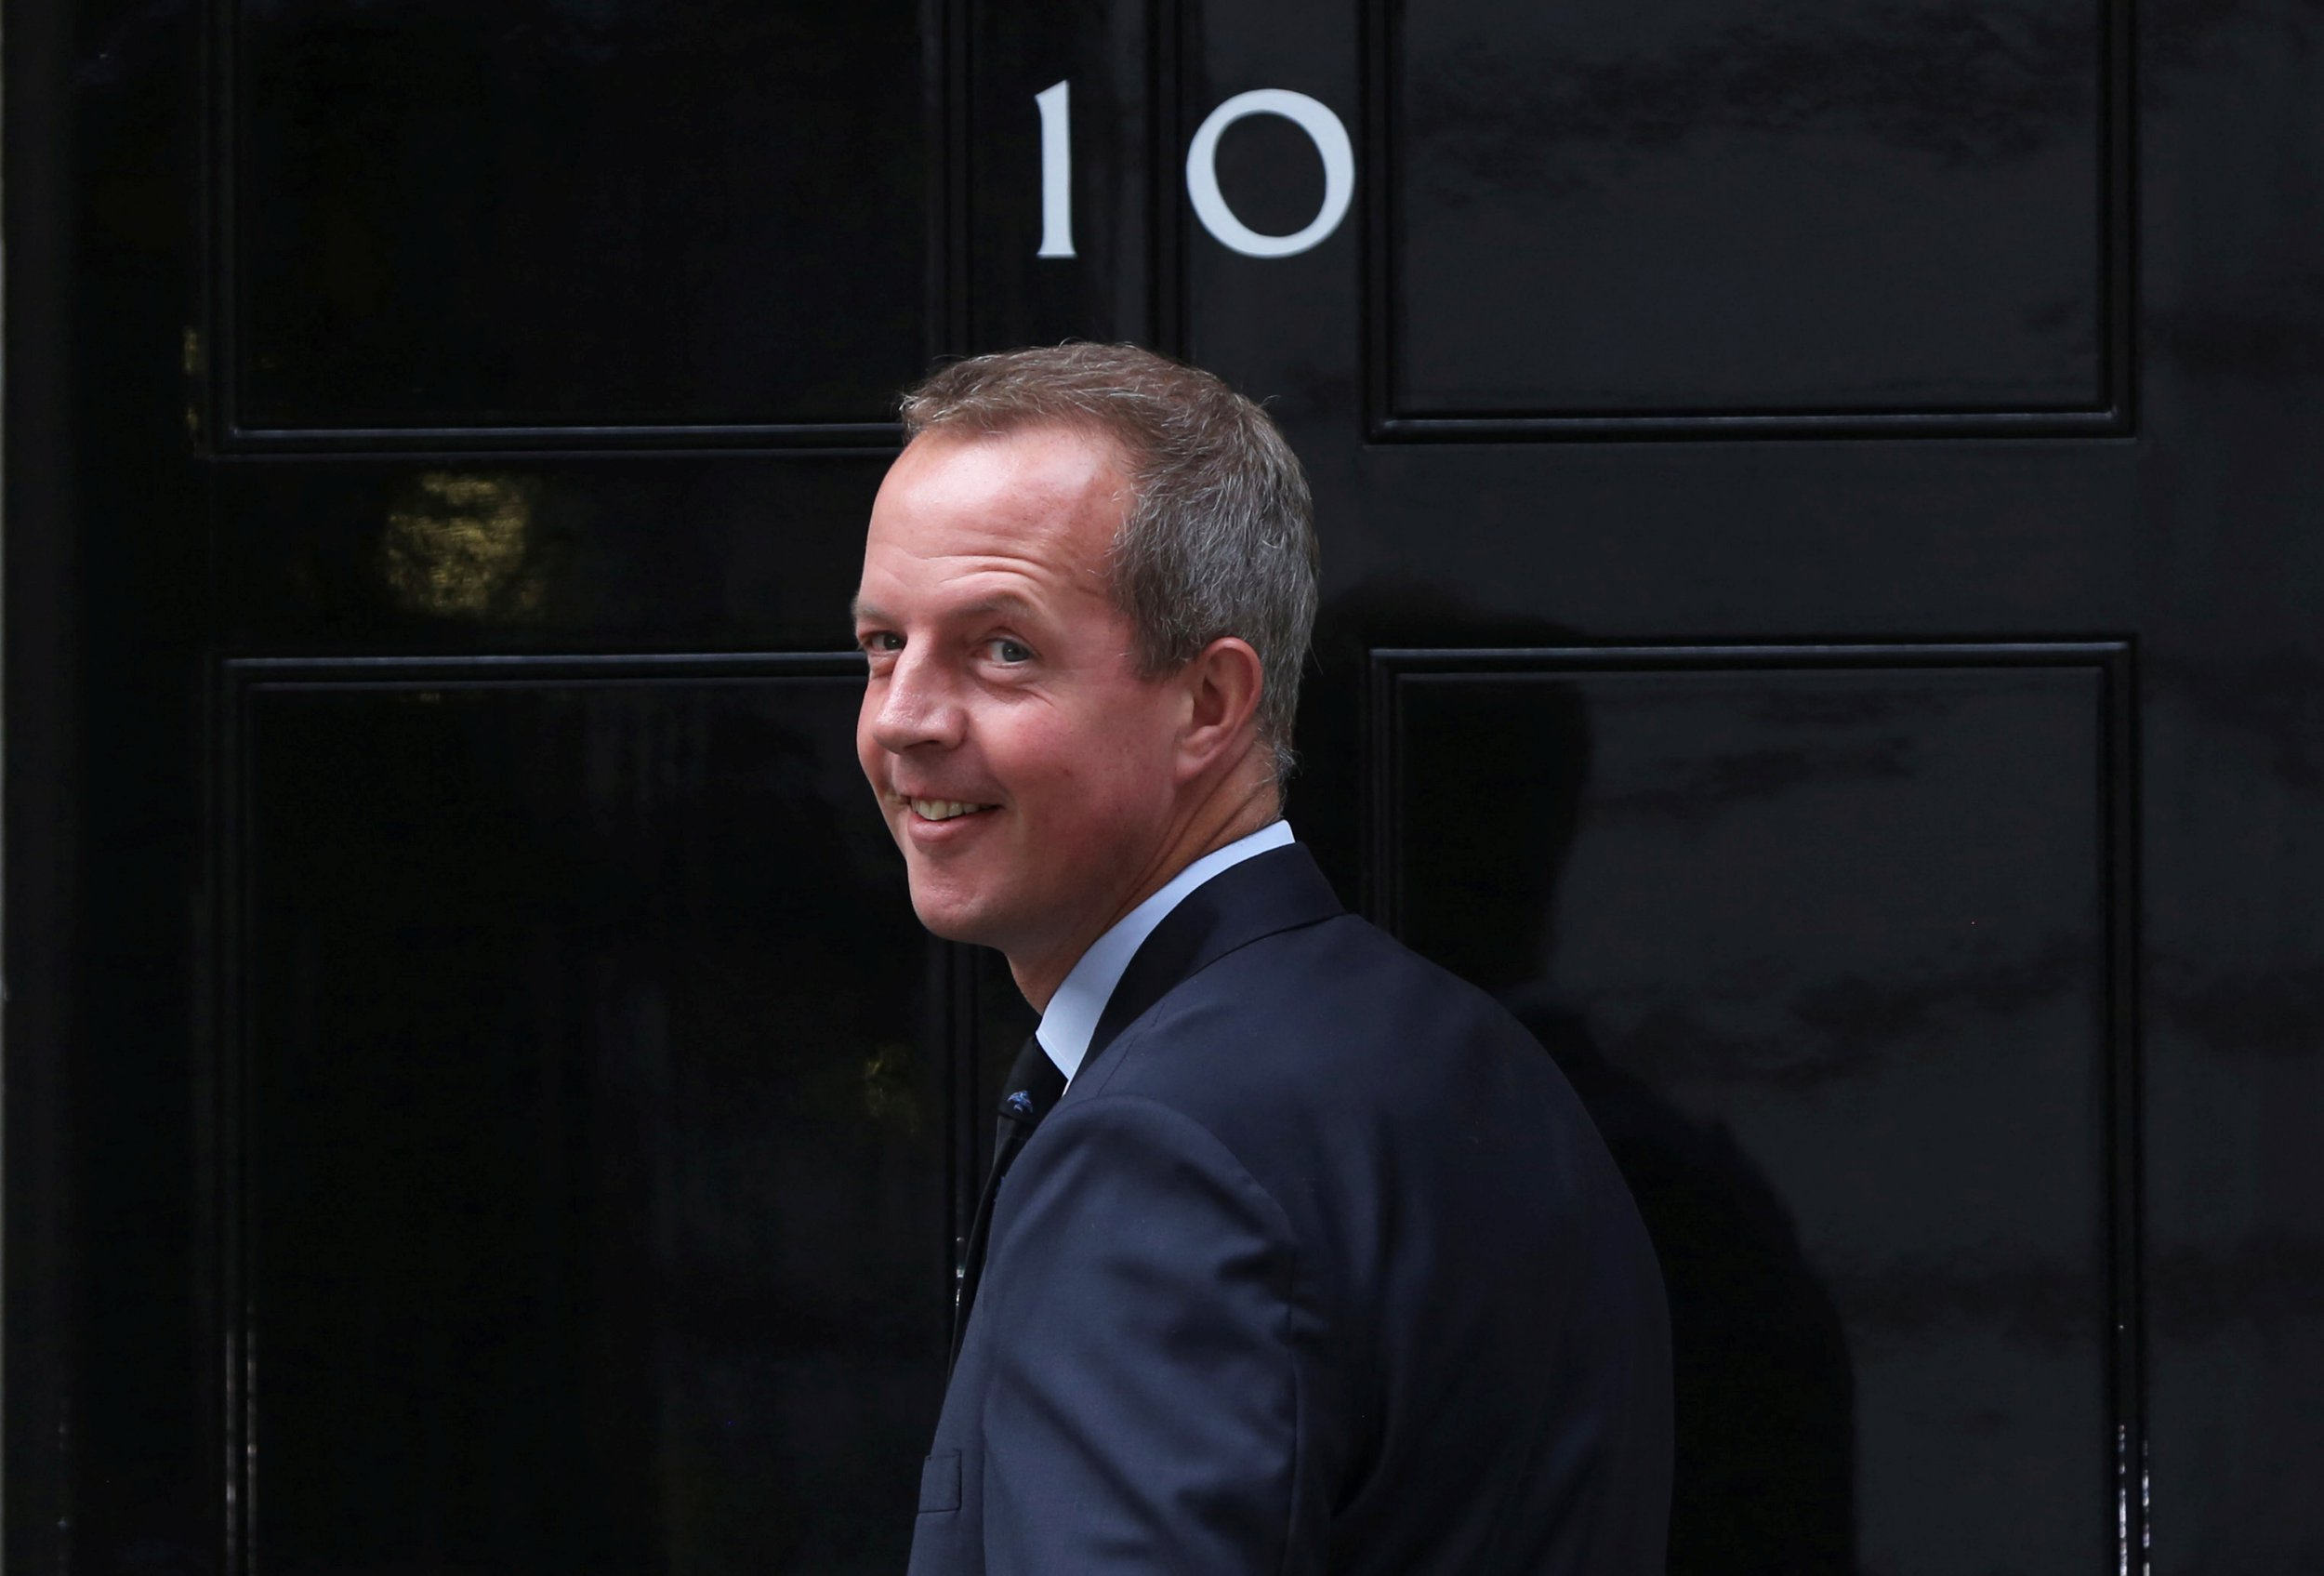 FILE PHOTO: Nick Boles arrives at 10 Downing Street in central London, Britain May 11, 2015. REUTERS/Neil Hall/File Photo/File Photo